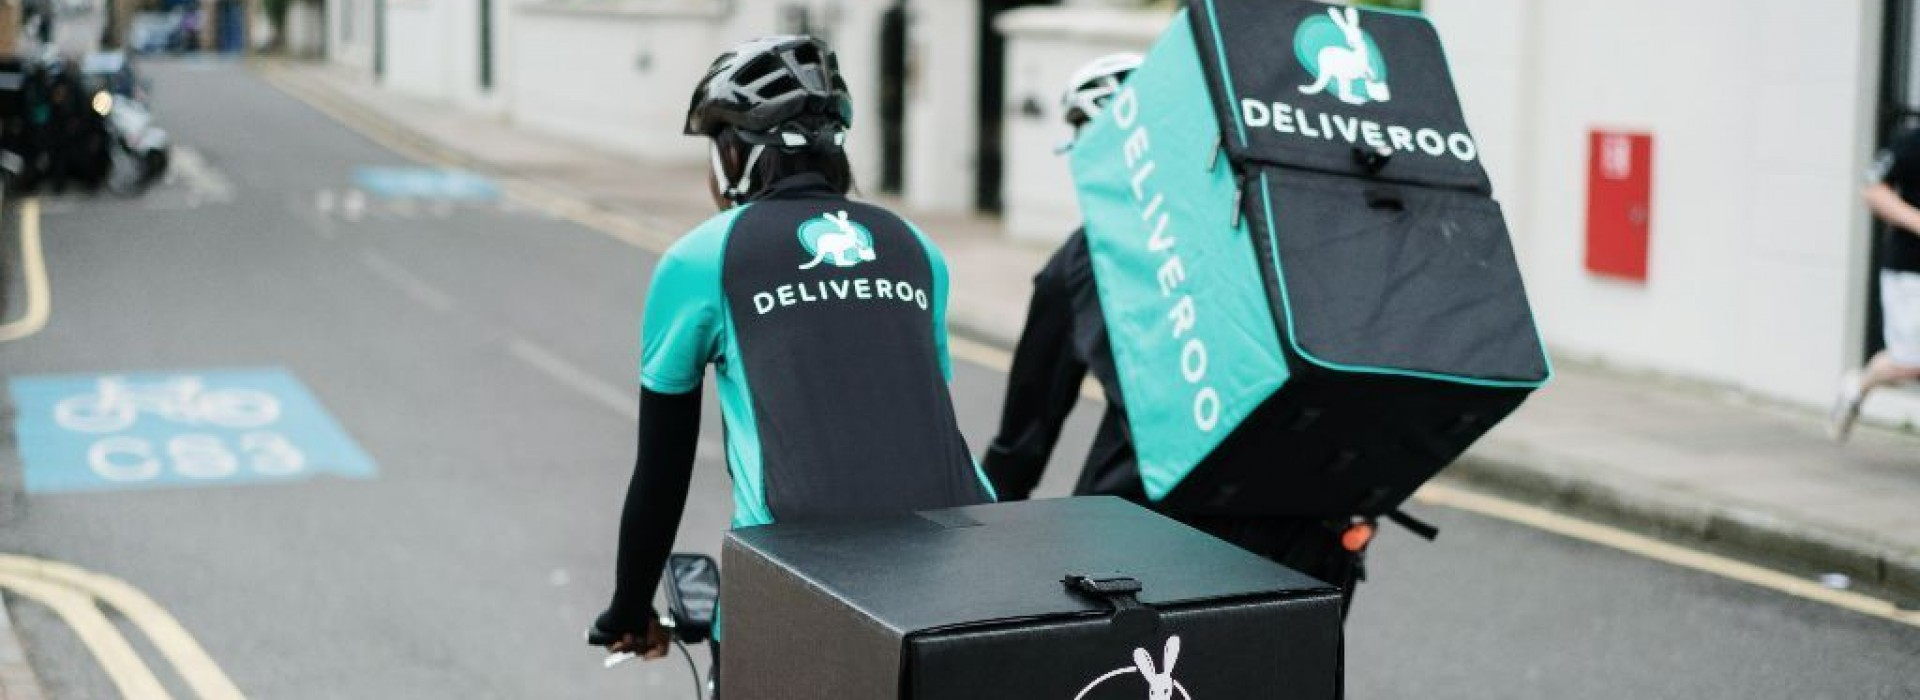 Deliveroo: Attest delivers